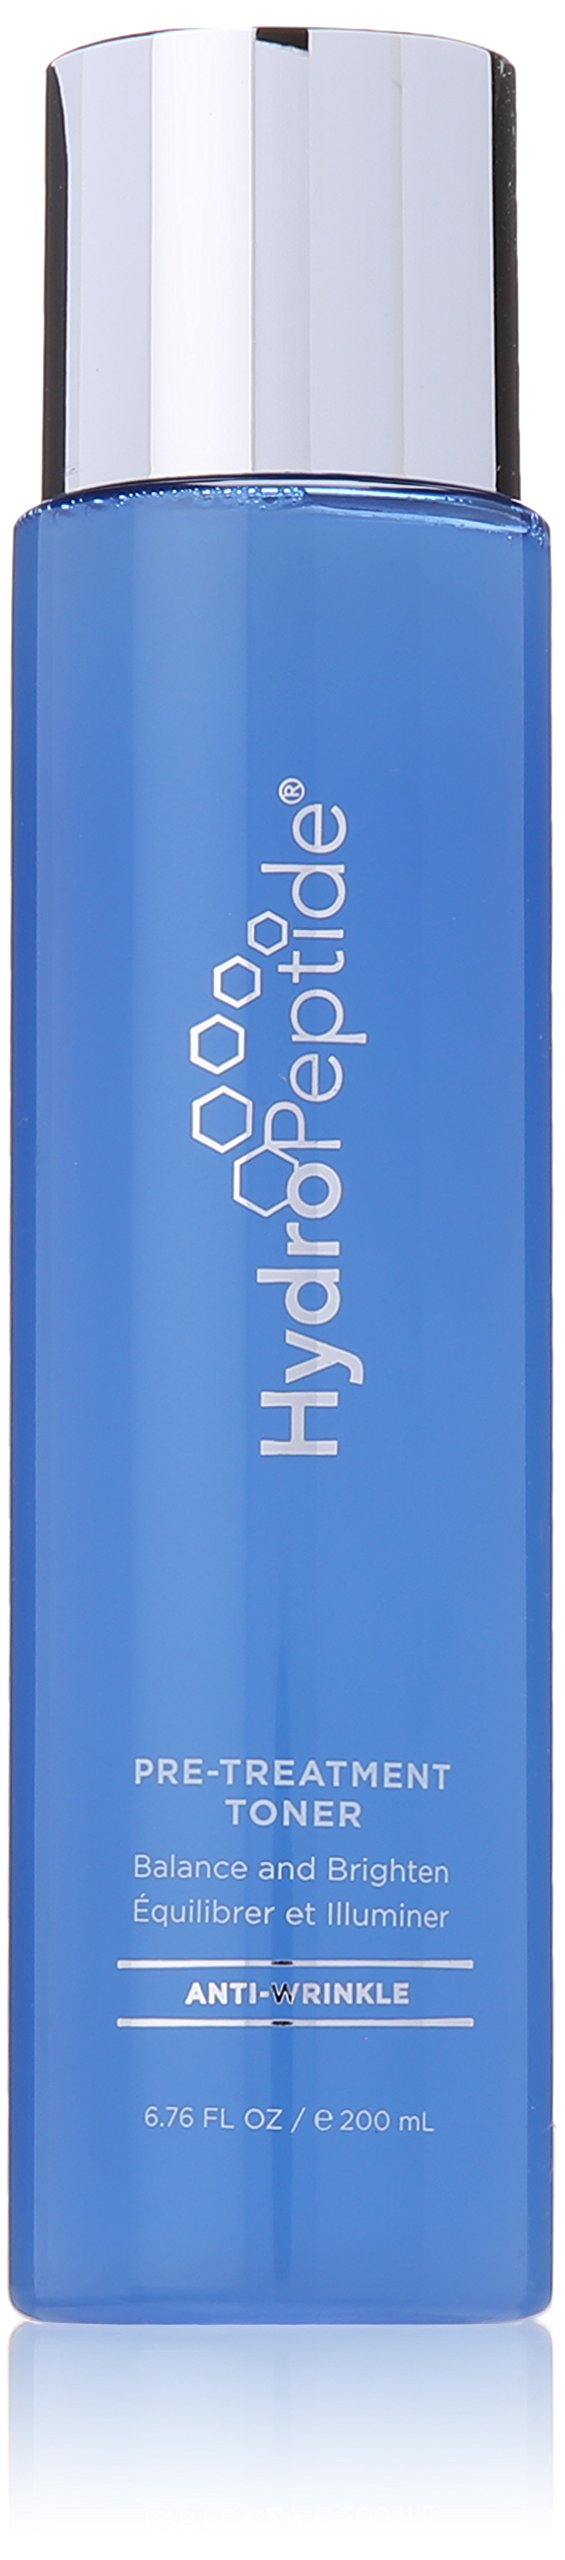 HydroPeptide Balance and Brighten Pre-Treatment Toner, 6.76 fl. oz. by HydroPeptide